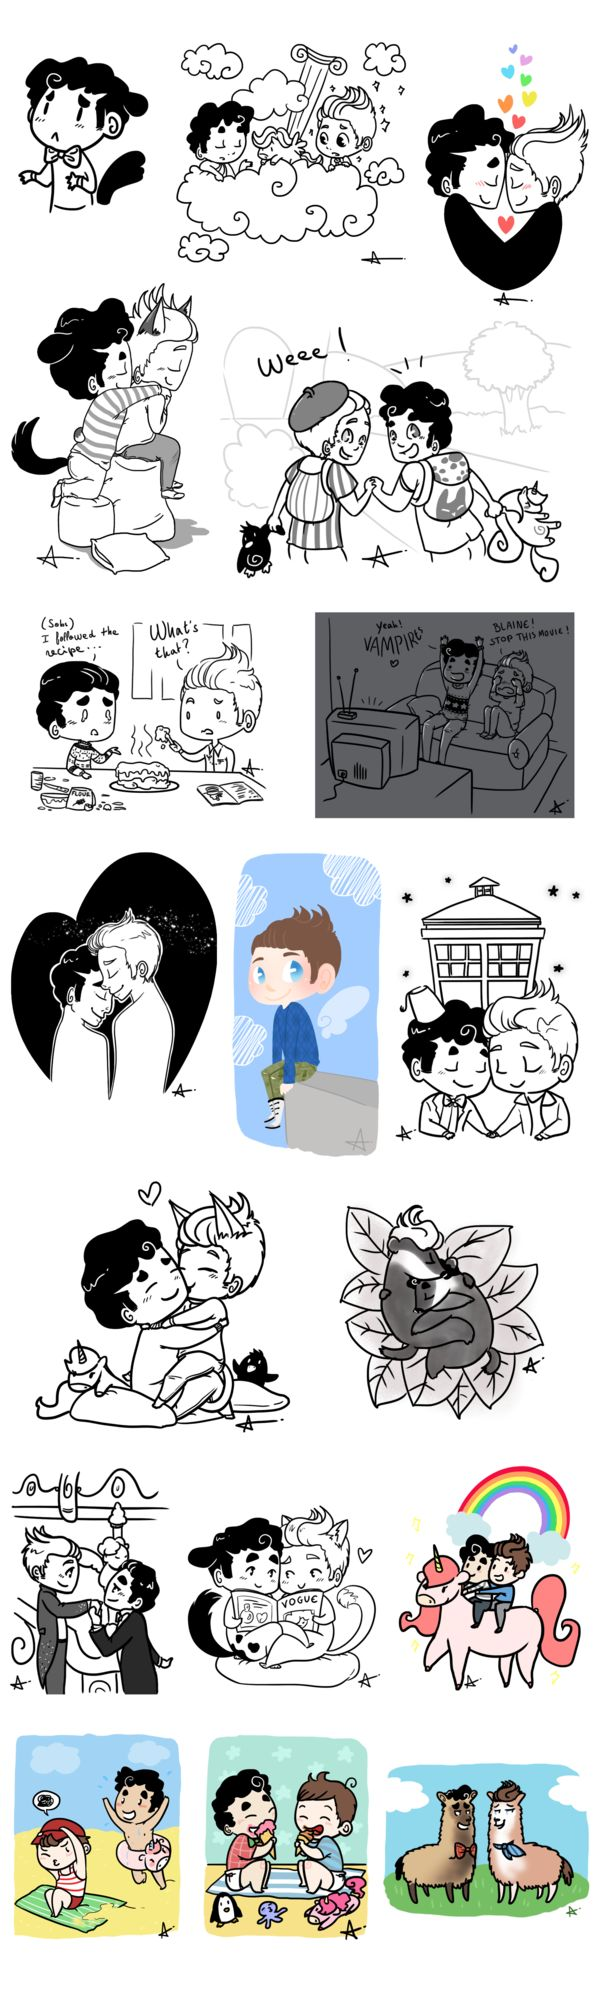 Klaine - Spam Doodles 5 by Sunshunes.deviantart.com on @deviantART